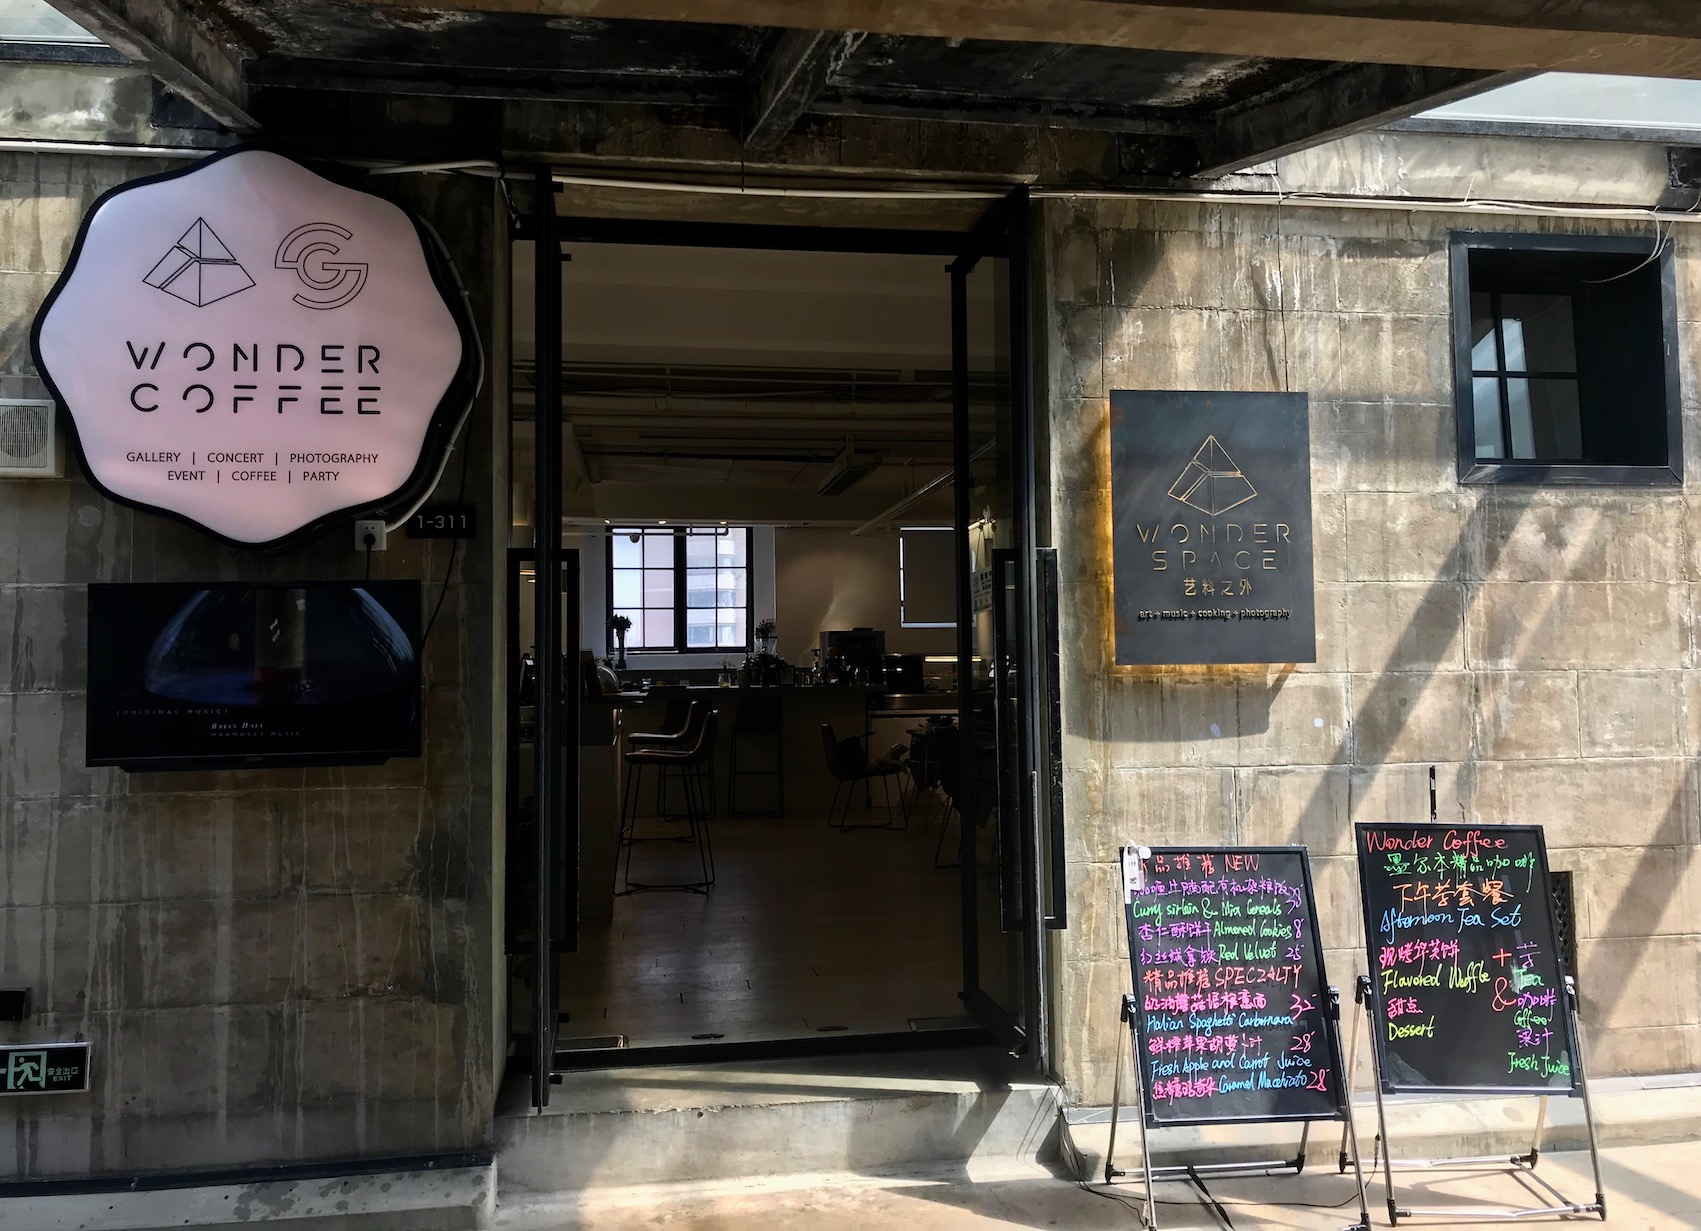 Wonder Coffee 1933 Slaughterhouse Shanghai.